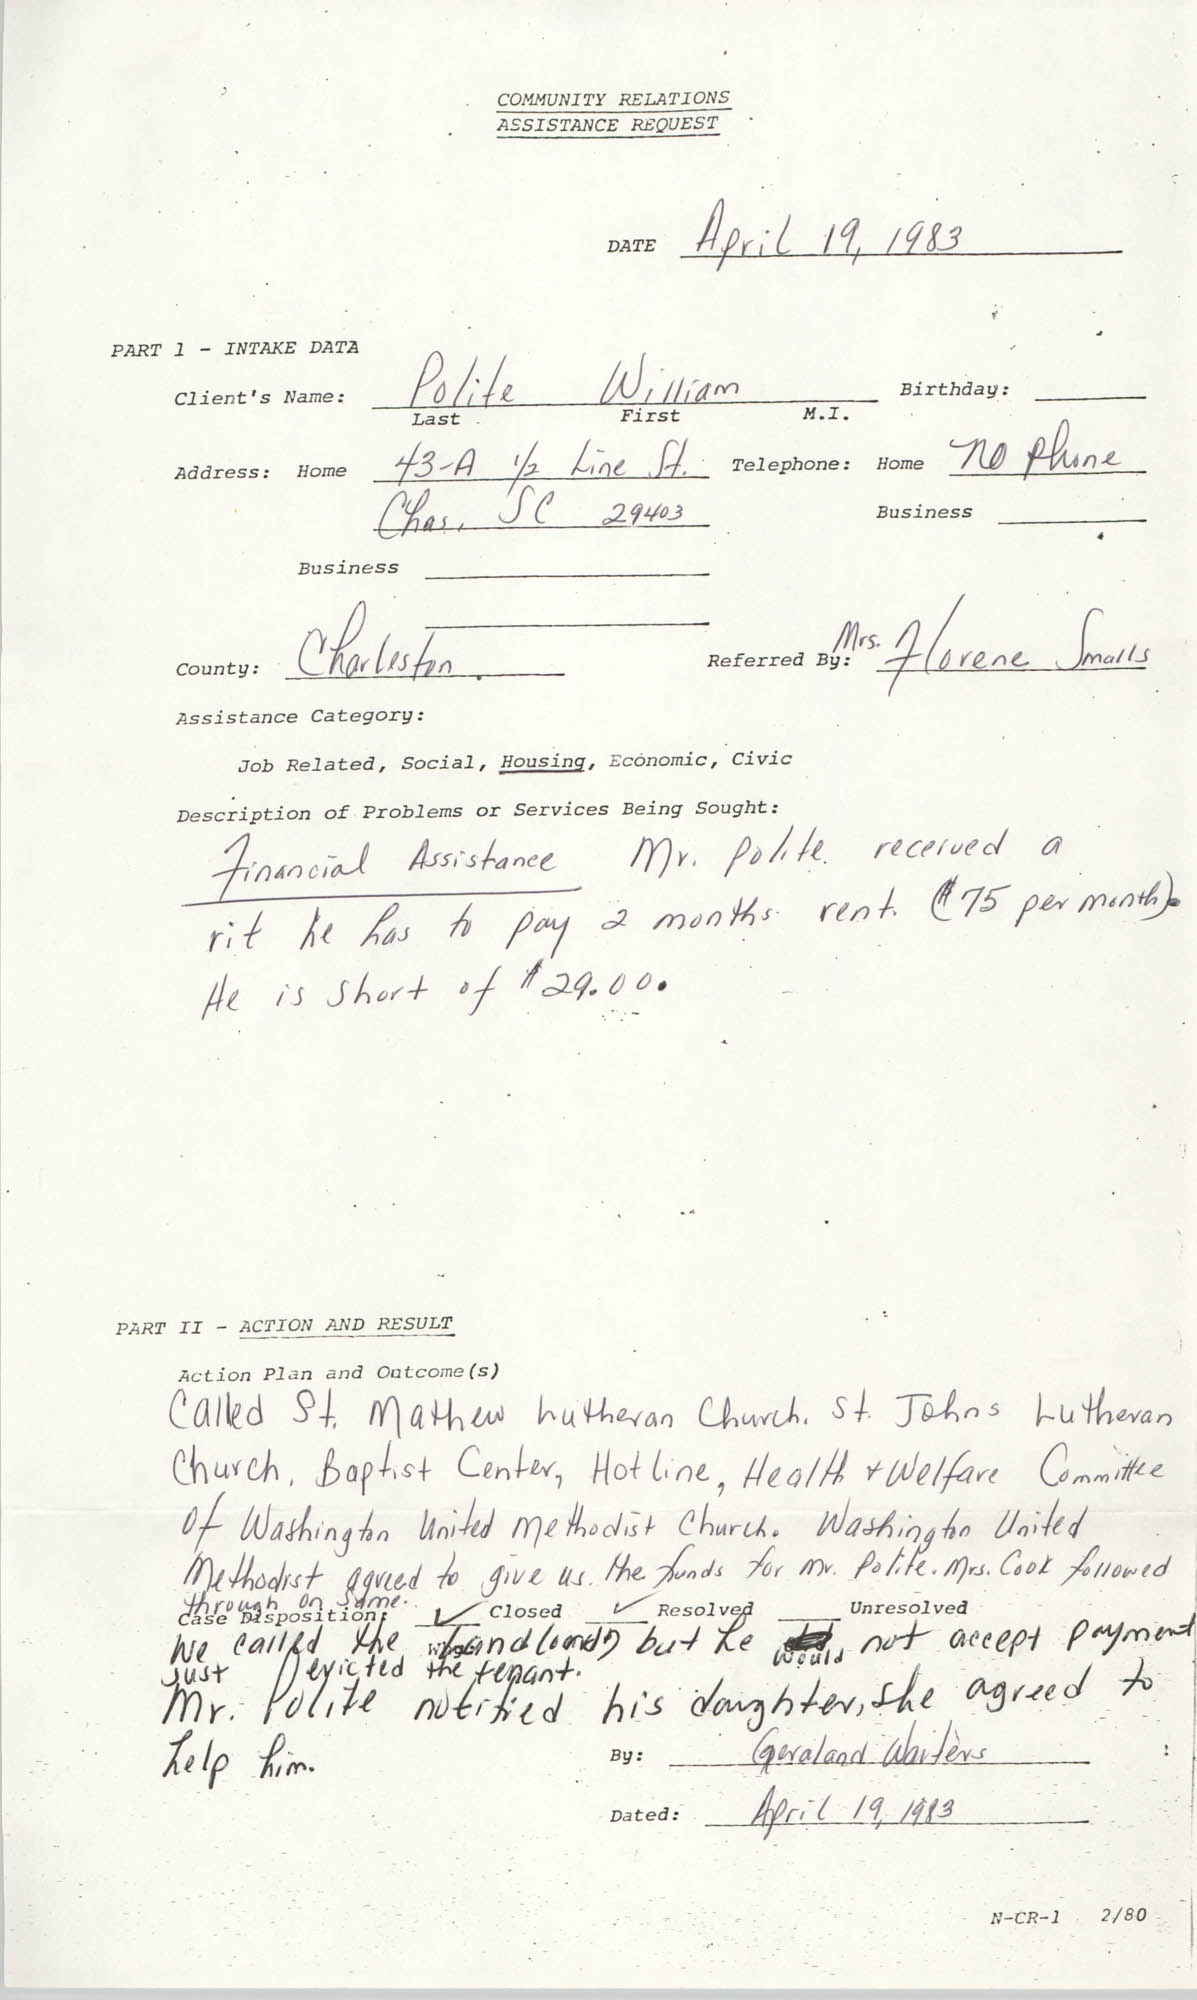 Community Relations Assistance Request, April 19, 1983